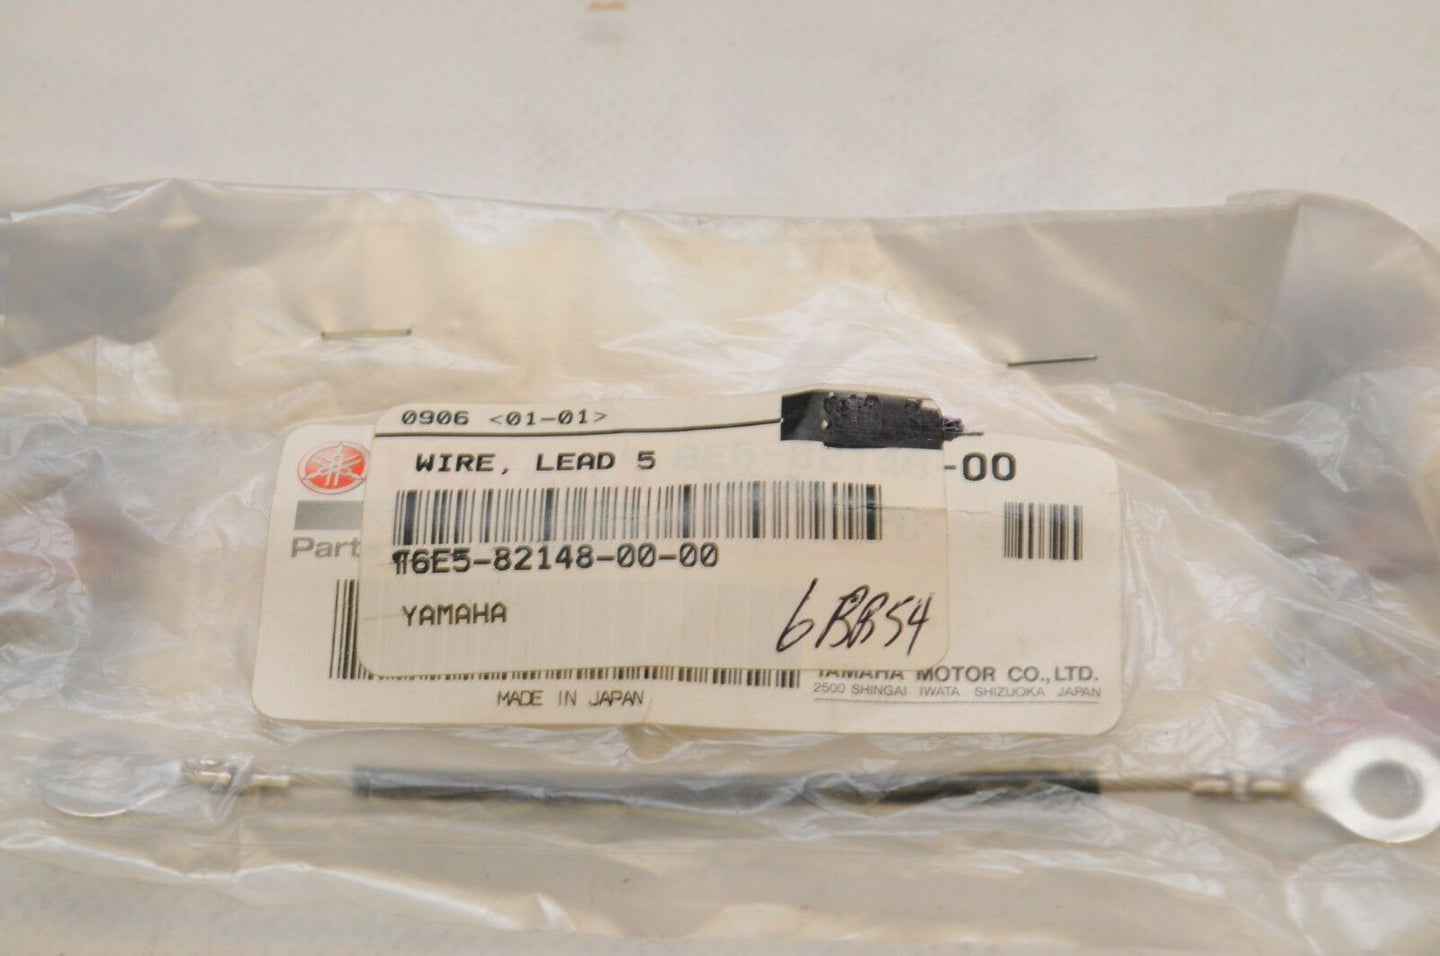 NEW NOS OEM YAMAHA MARINE 6E5-82148-00-00 WIRE,LEAD4 (TILT/TRIM)